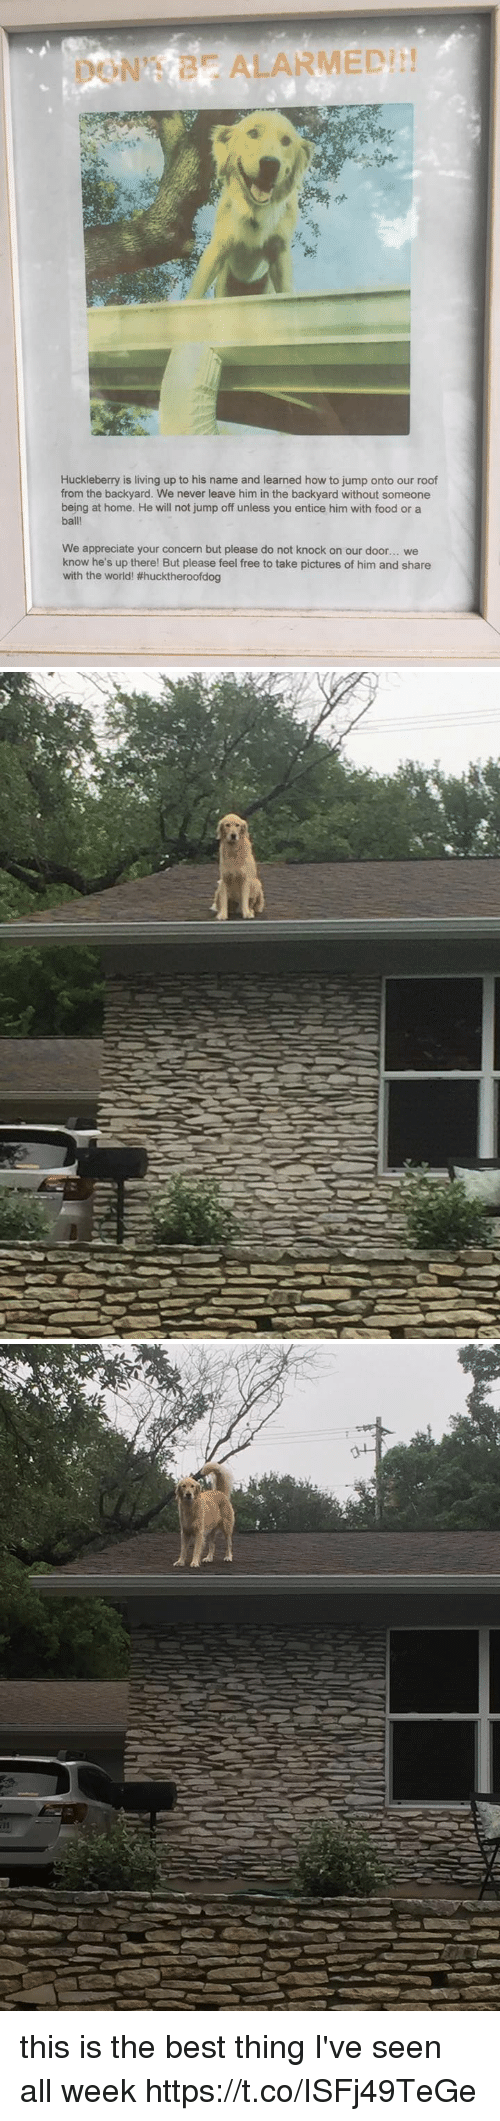 jumps off: ALARMED!  Huckleberry is living up to his name and learned how to jump onto our roof  from the backyard. We never leave him in the backyard without someone  being at home. He will not jump off unless you entice him with food or a  ball!  We appreciate your concern but please do not knock on our door... we  know he's up there! But please feel free to take pictures of him and share  with the world! this is the best thing I've seen all week https://t.co/ISFj49TeGe